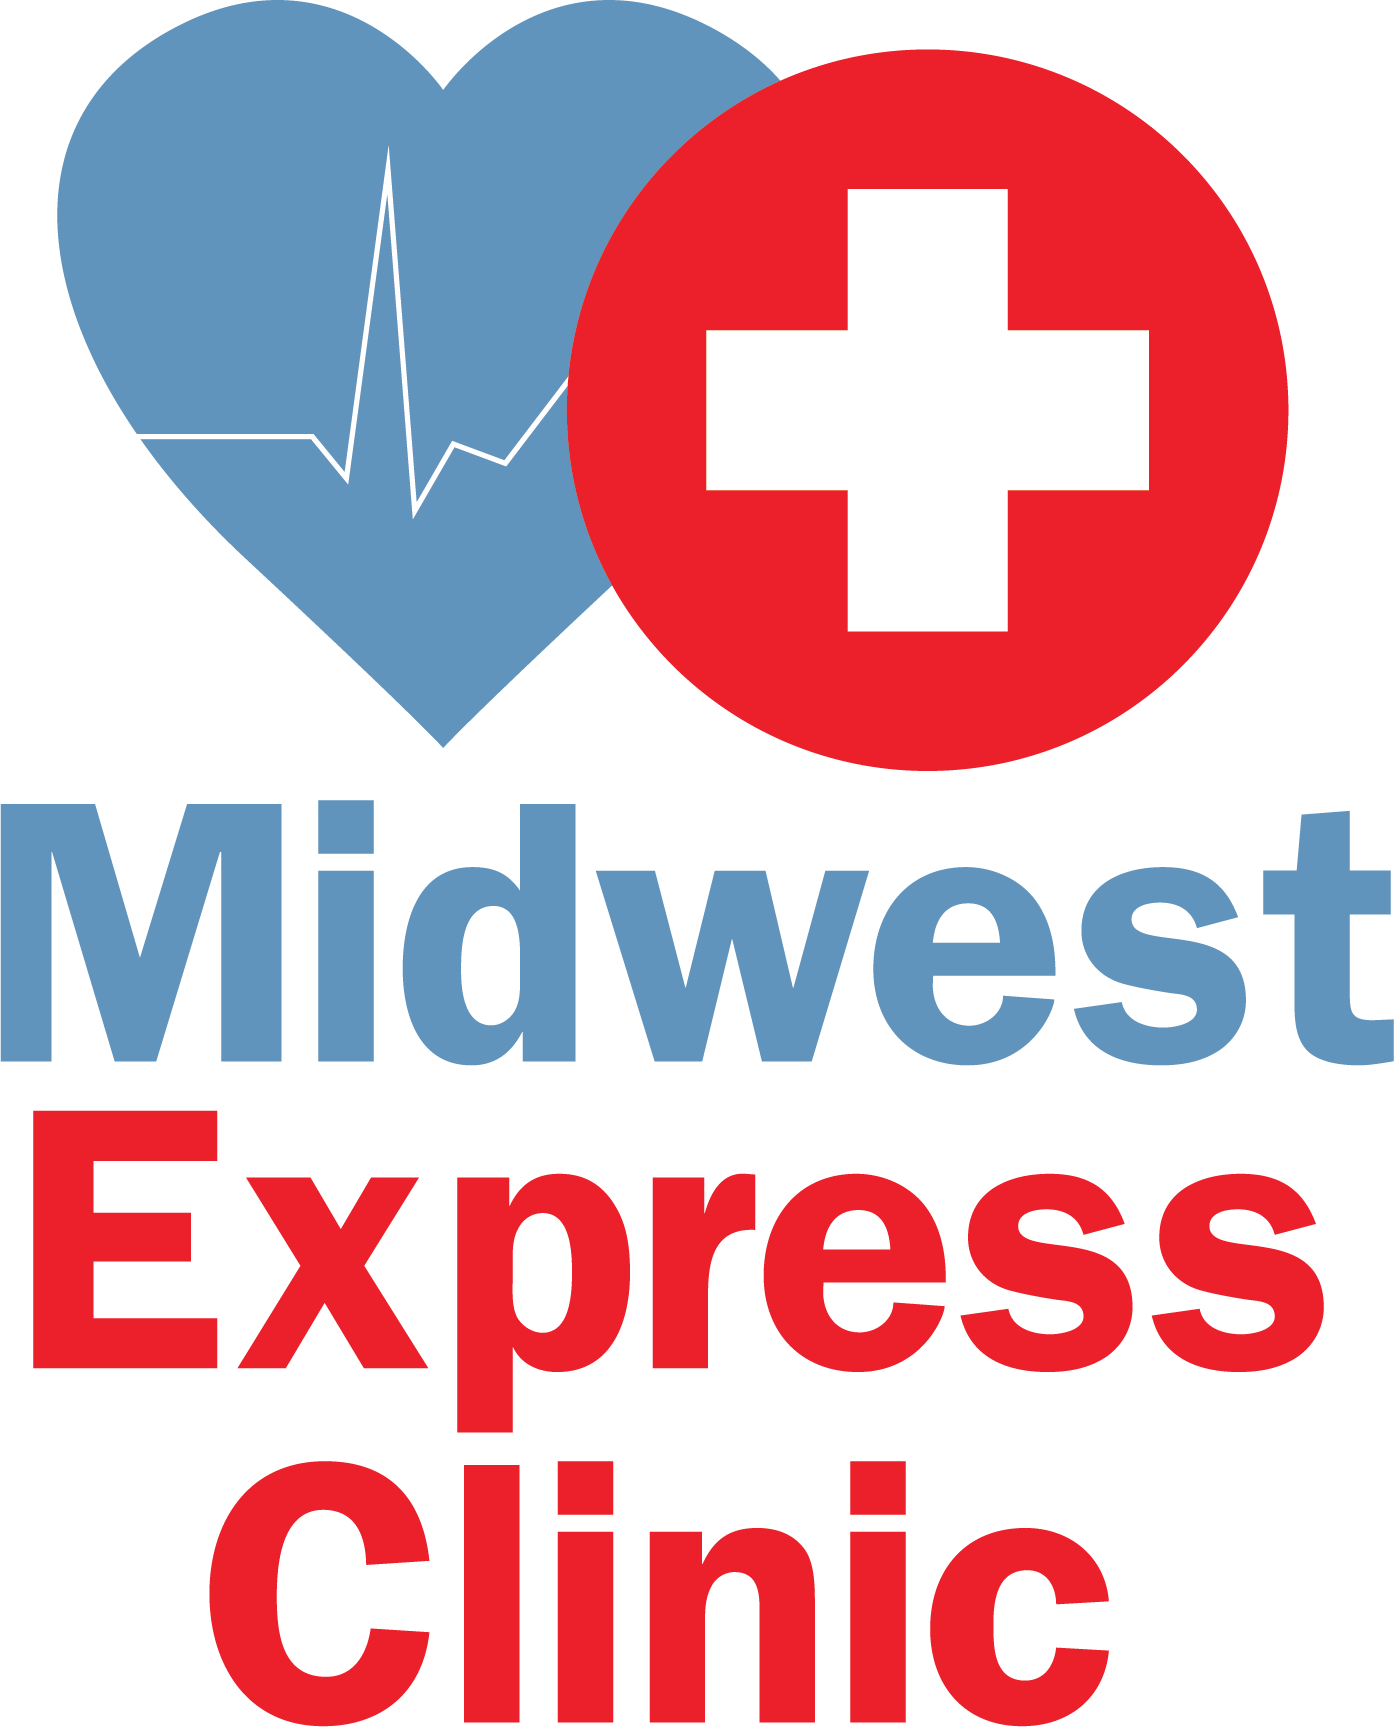 Midwest Express Clinic - Mount Greenwood Logo